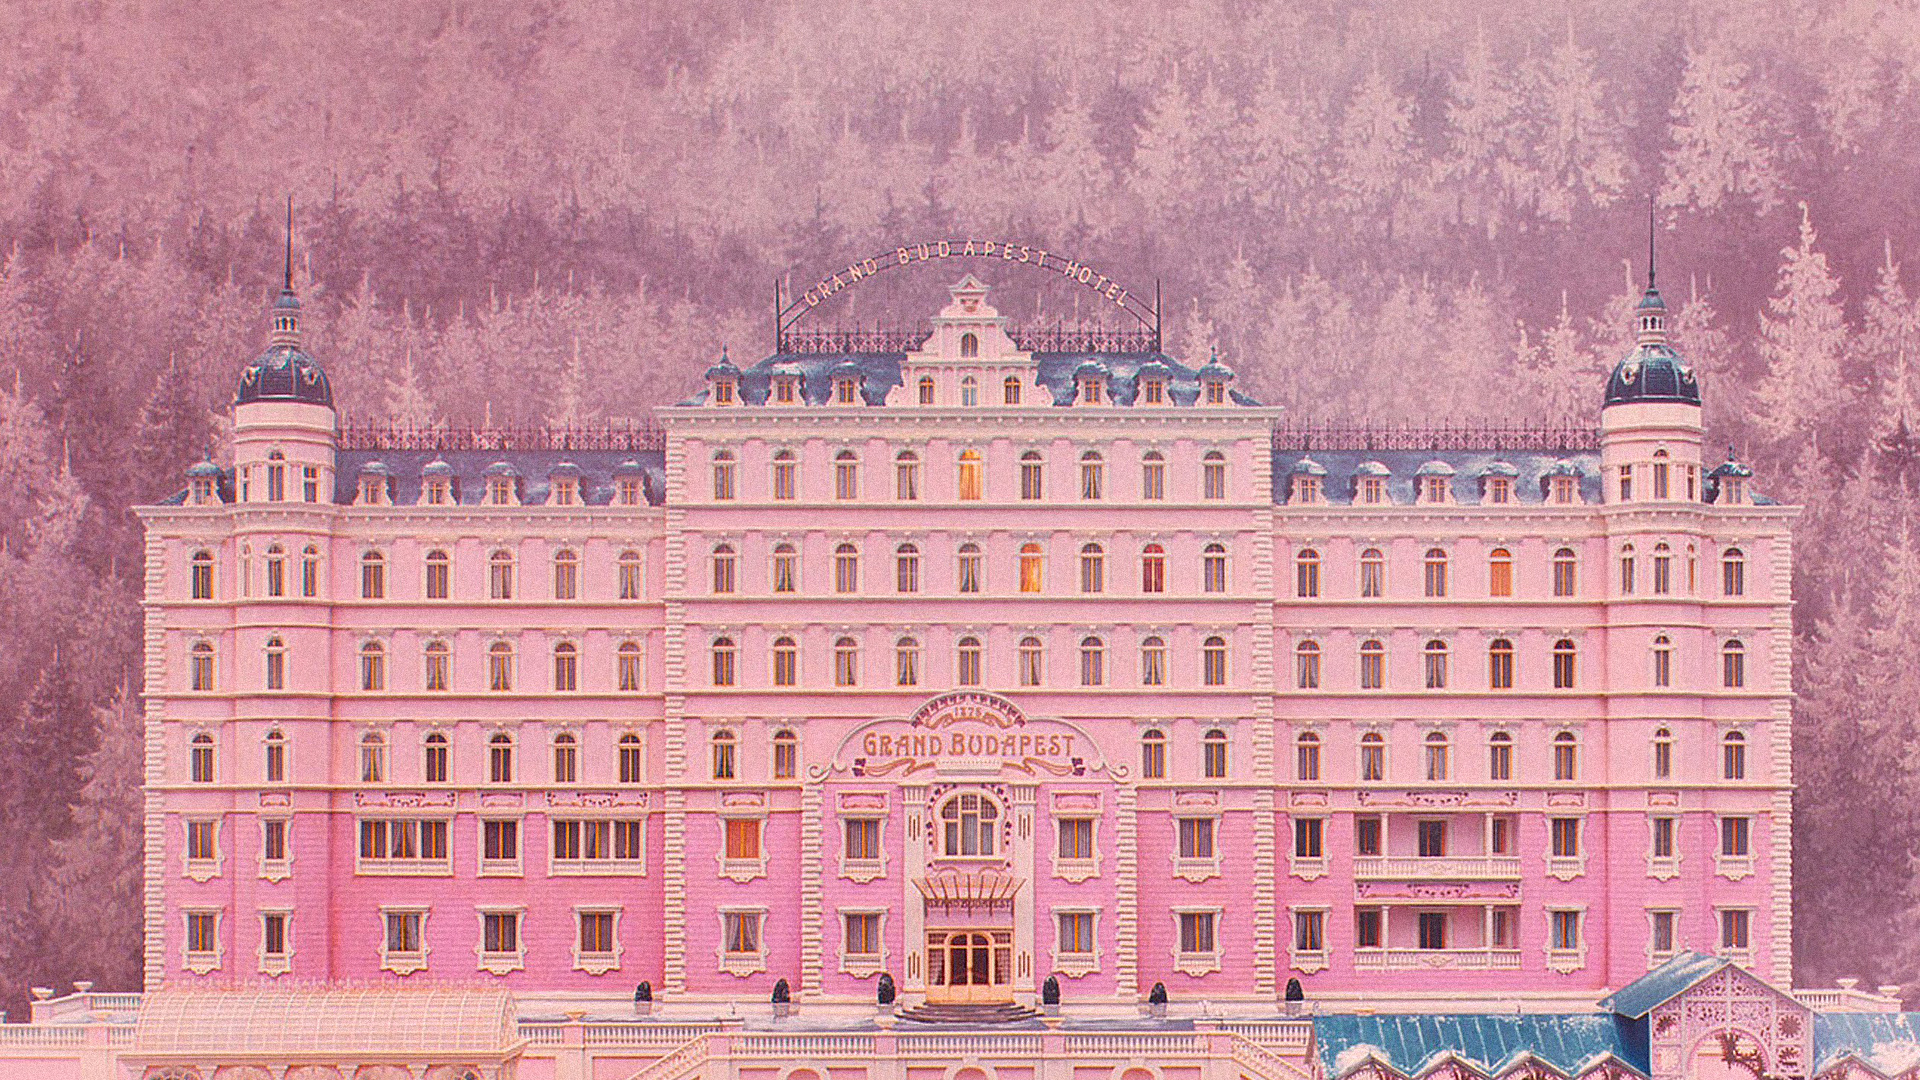 1920x1080px The Grand Budapest Hotel 169794 KB 343729 1920x1080